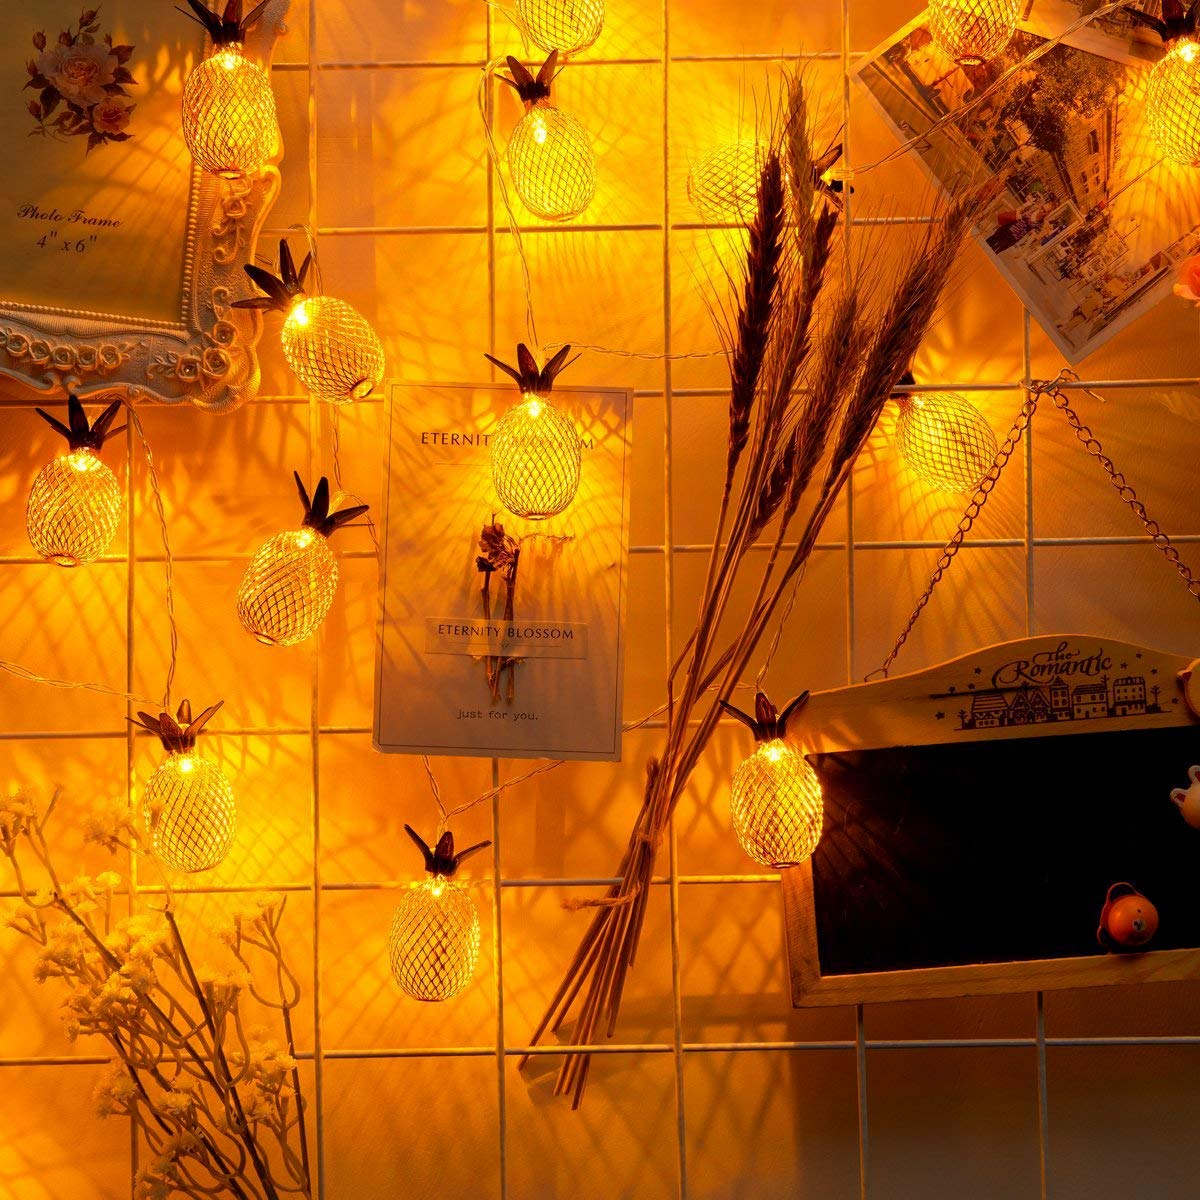 Aszune Pineapple String Lights, 9.8FT/3M 20 LED Bulbs Battery Operated Romantic Fairy Lights for Wedding Garden Festival Party Halloween Christmas Indoor & Outdoor Decoration-Warm White